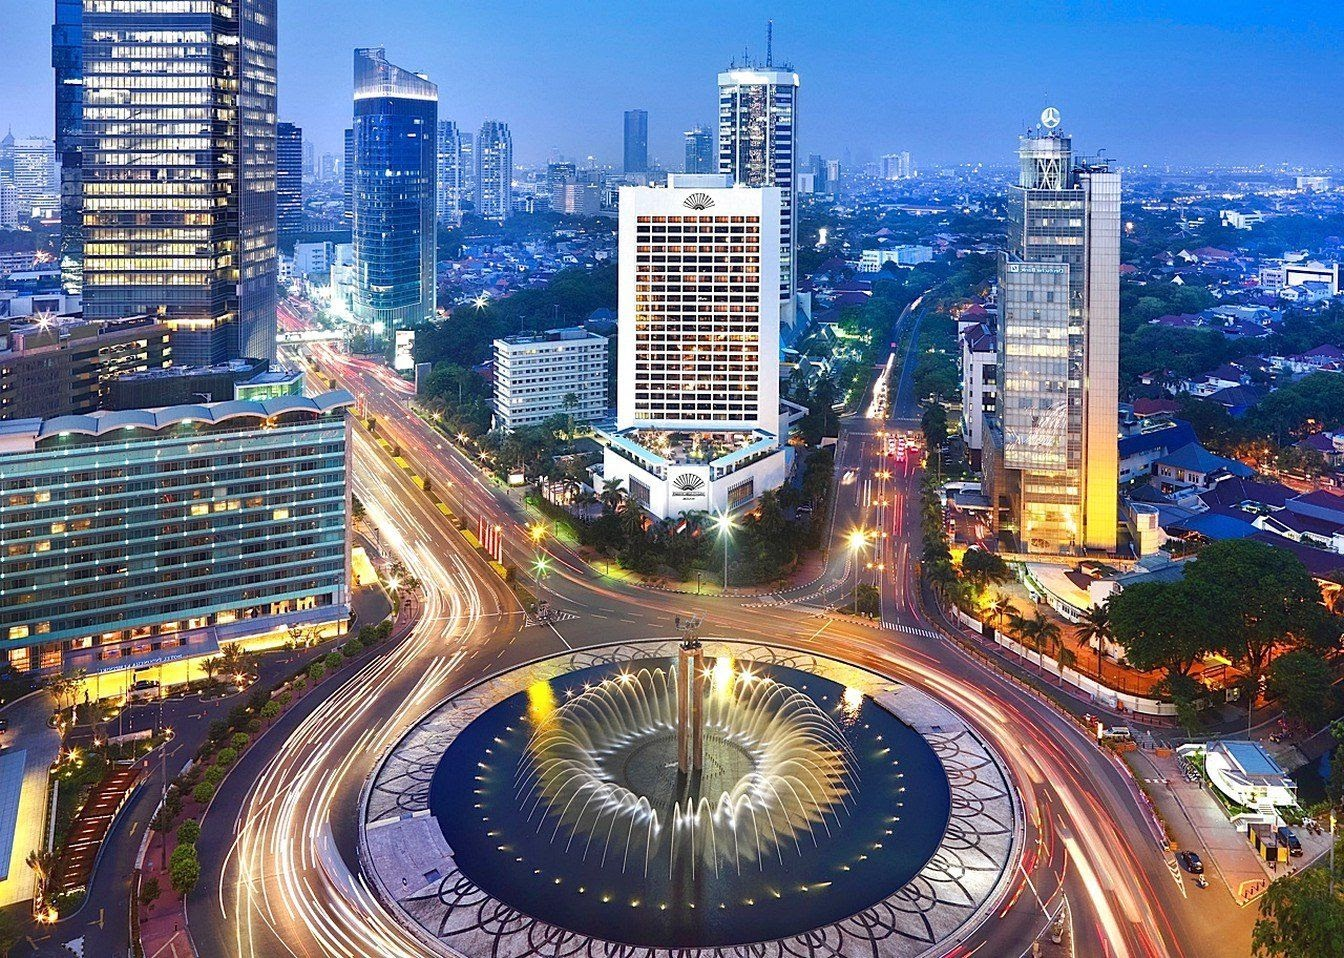 Indonesia to Resume New Capital Project after COVID-19 Delay